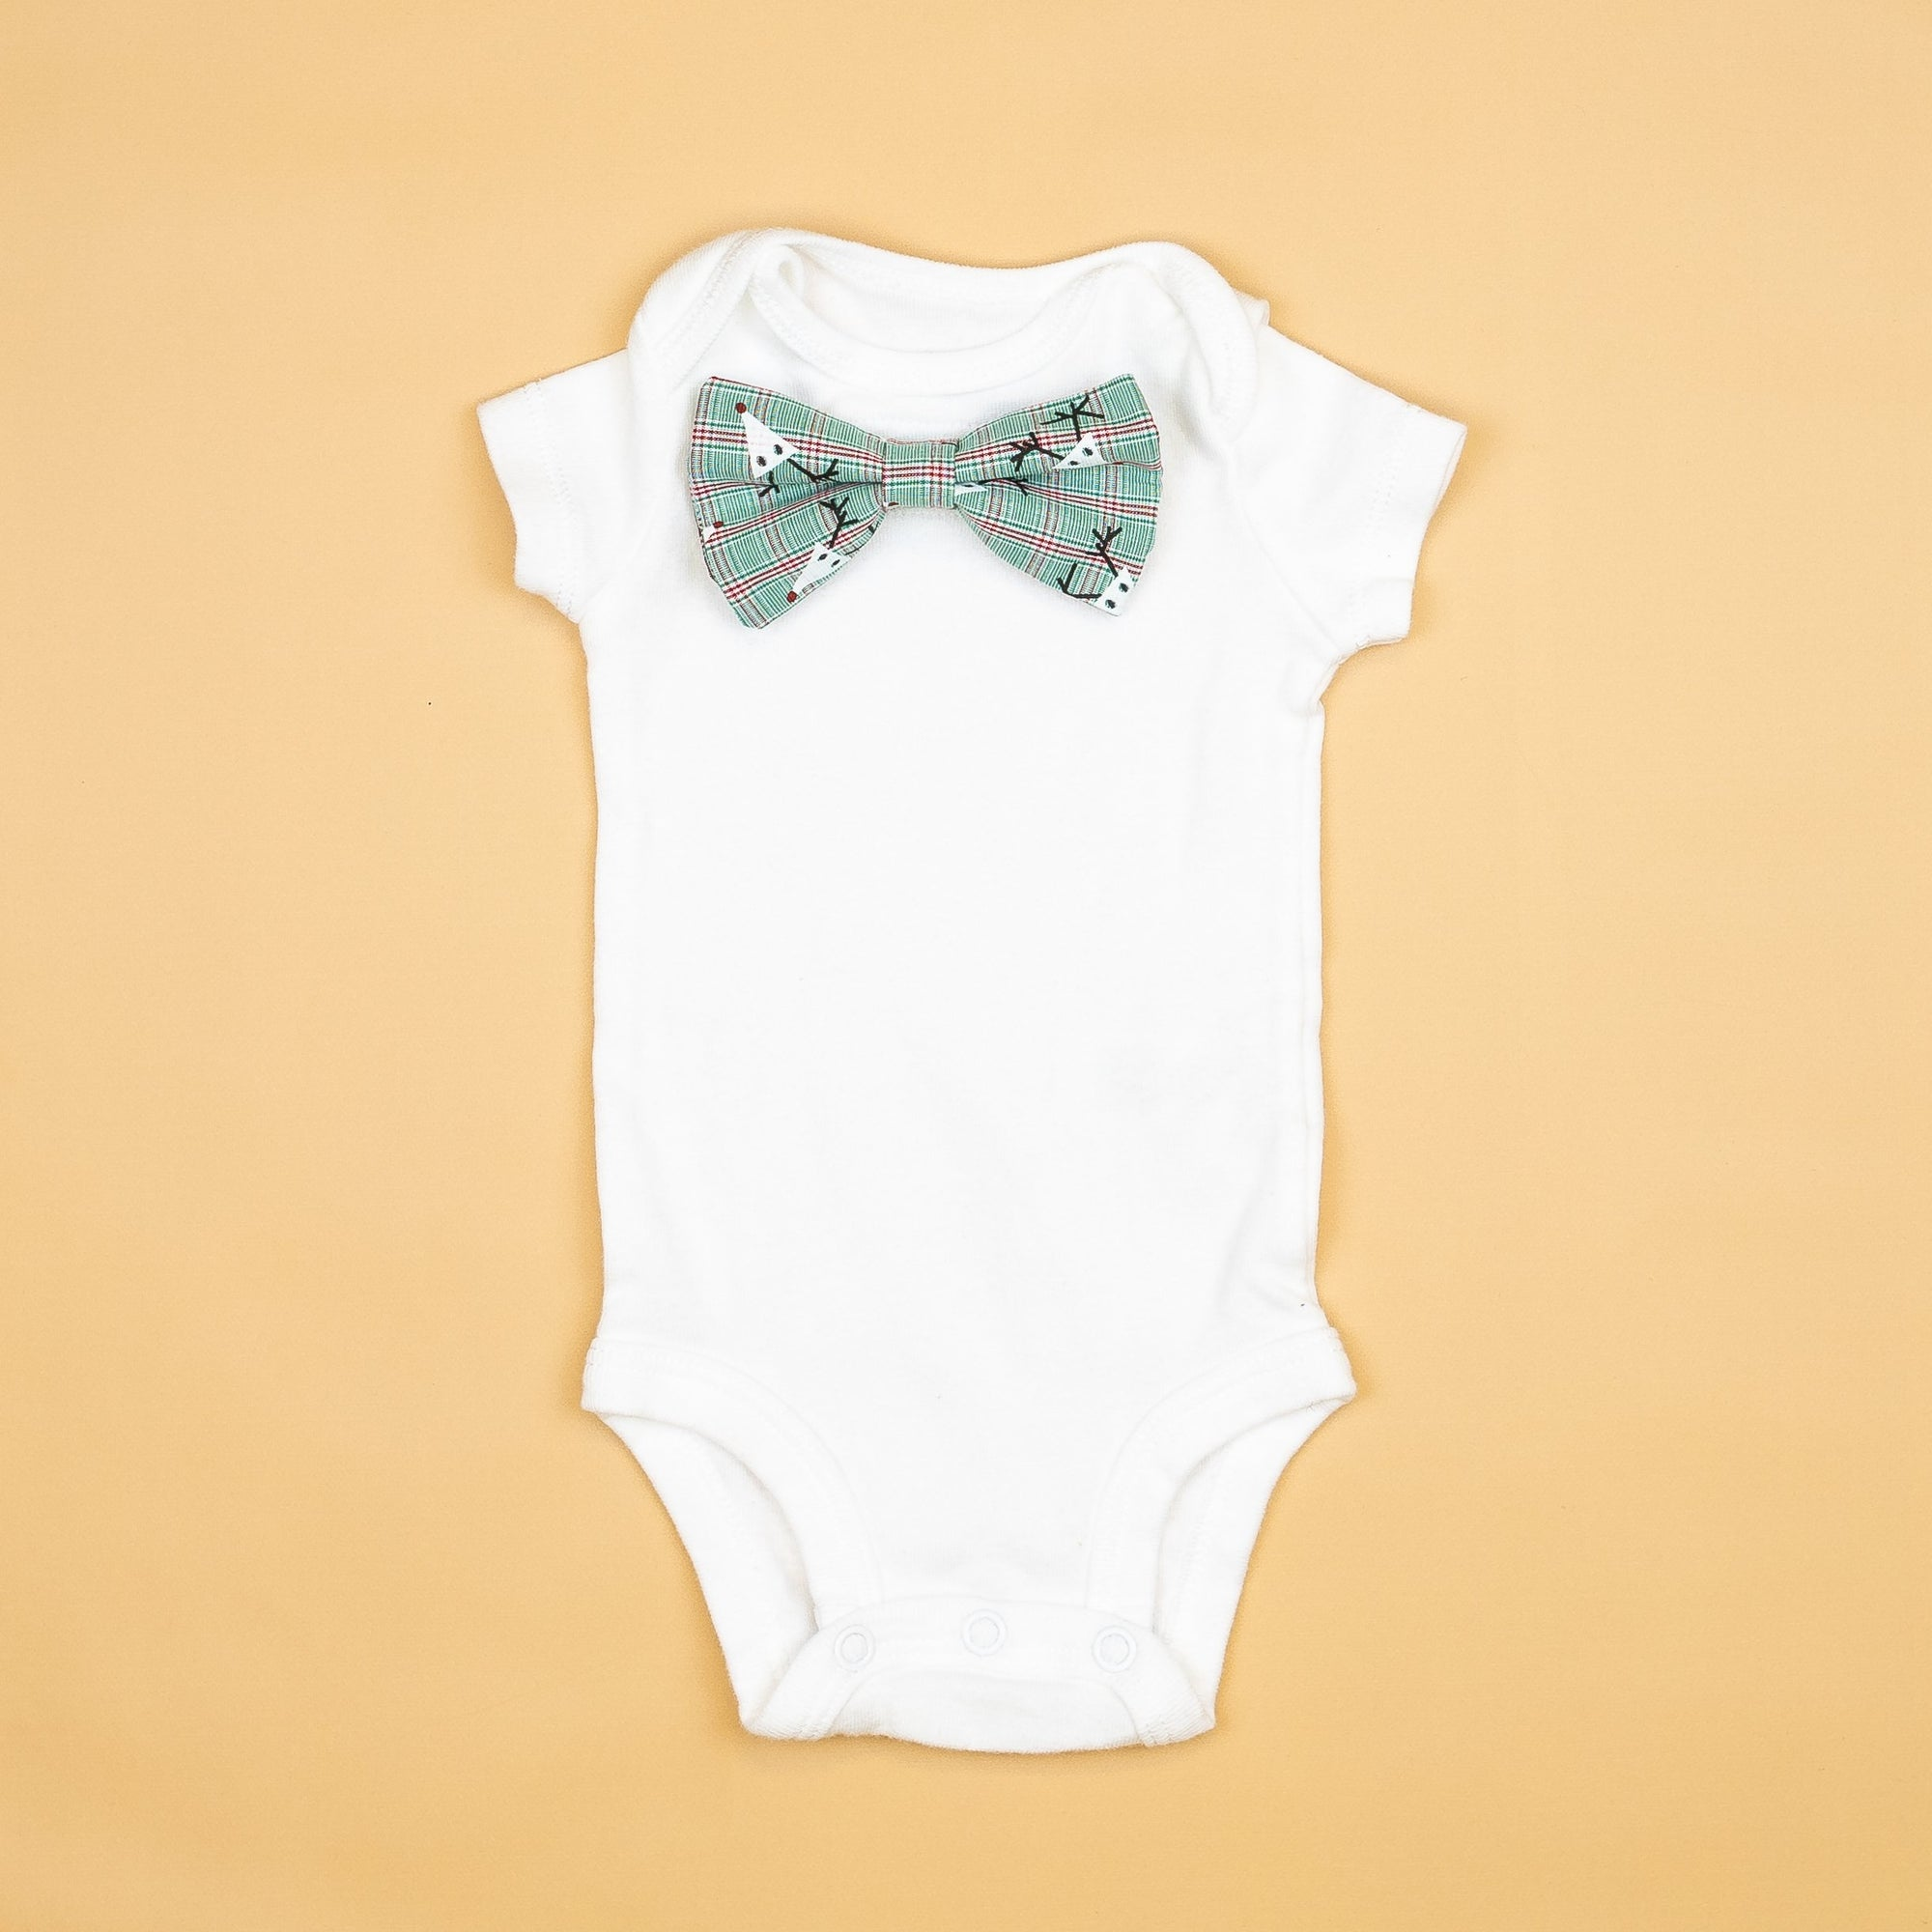 Cuddle Sleep Dream Oh Snap Reindeer Plaid Bowtie Bodysuit